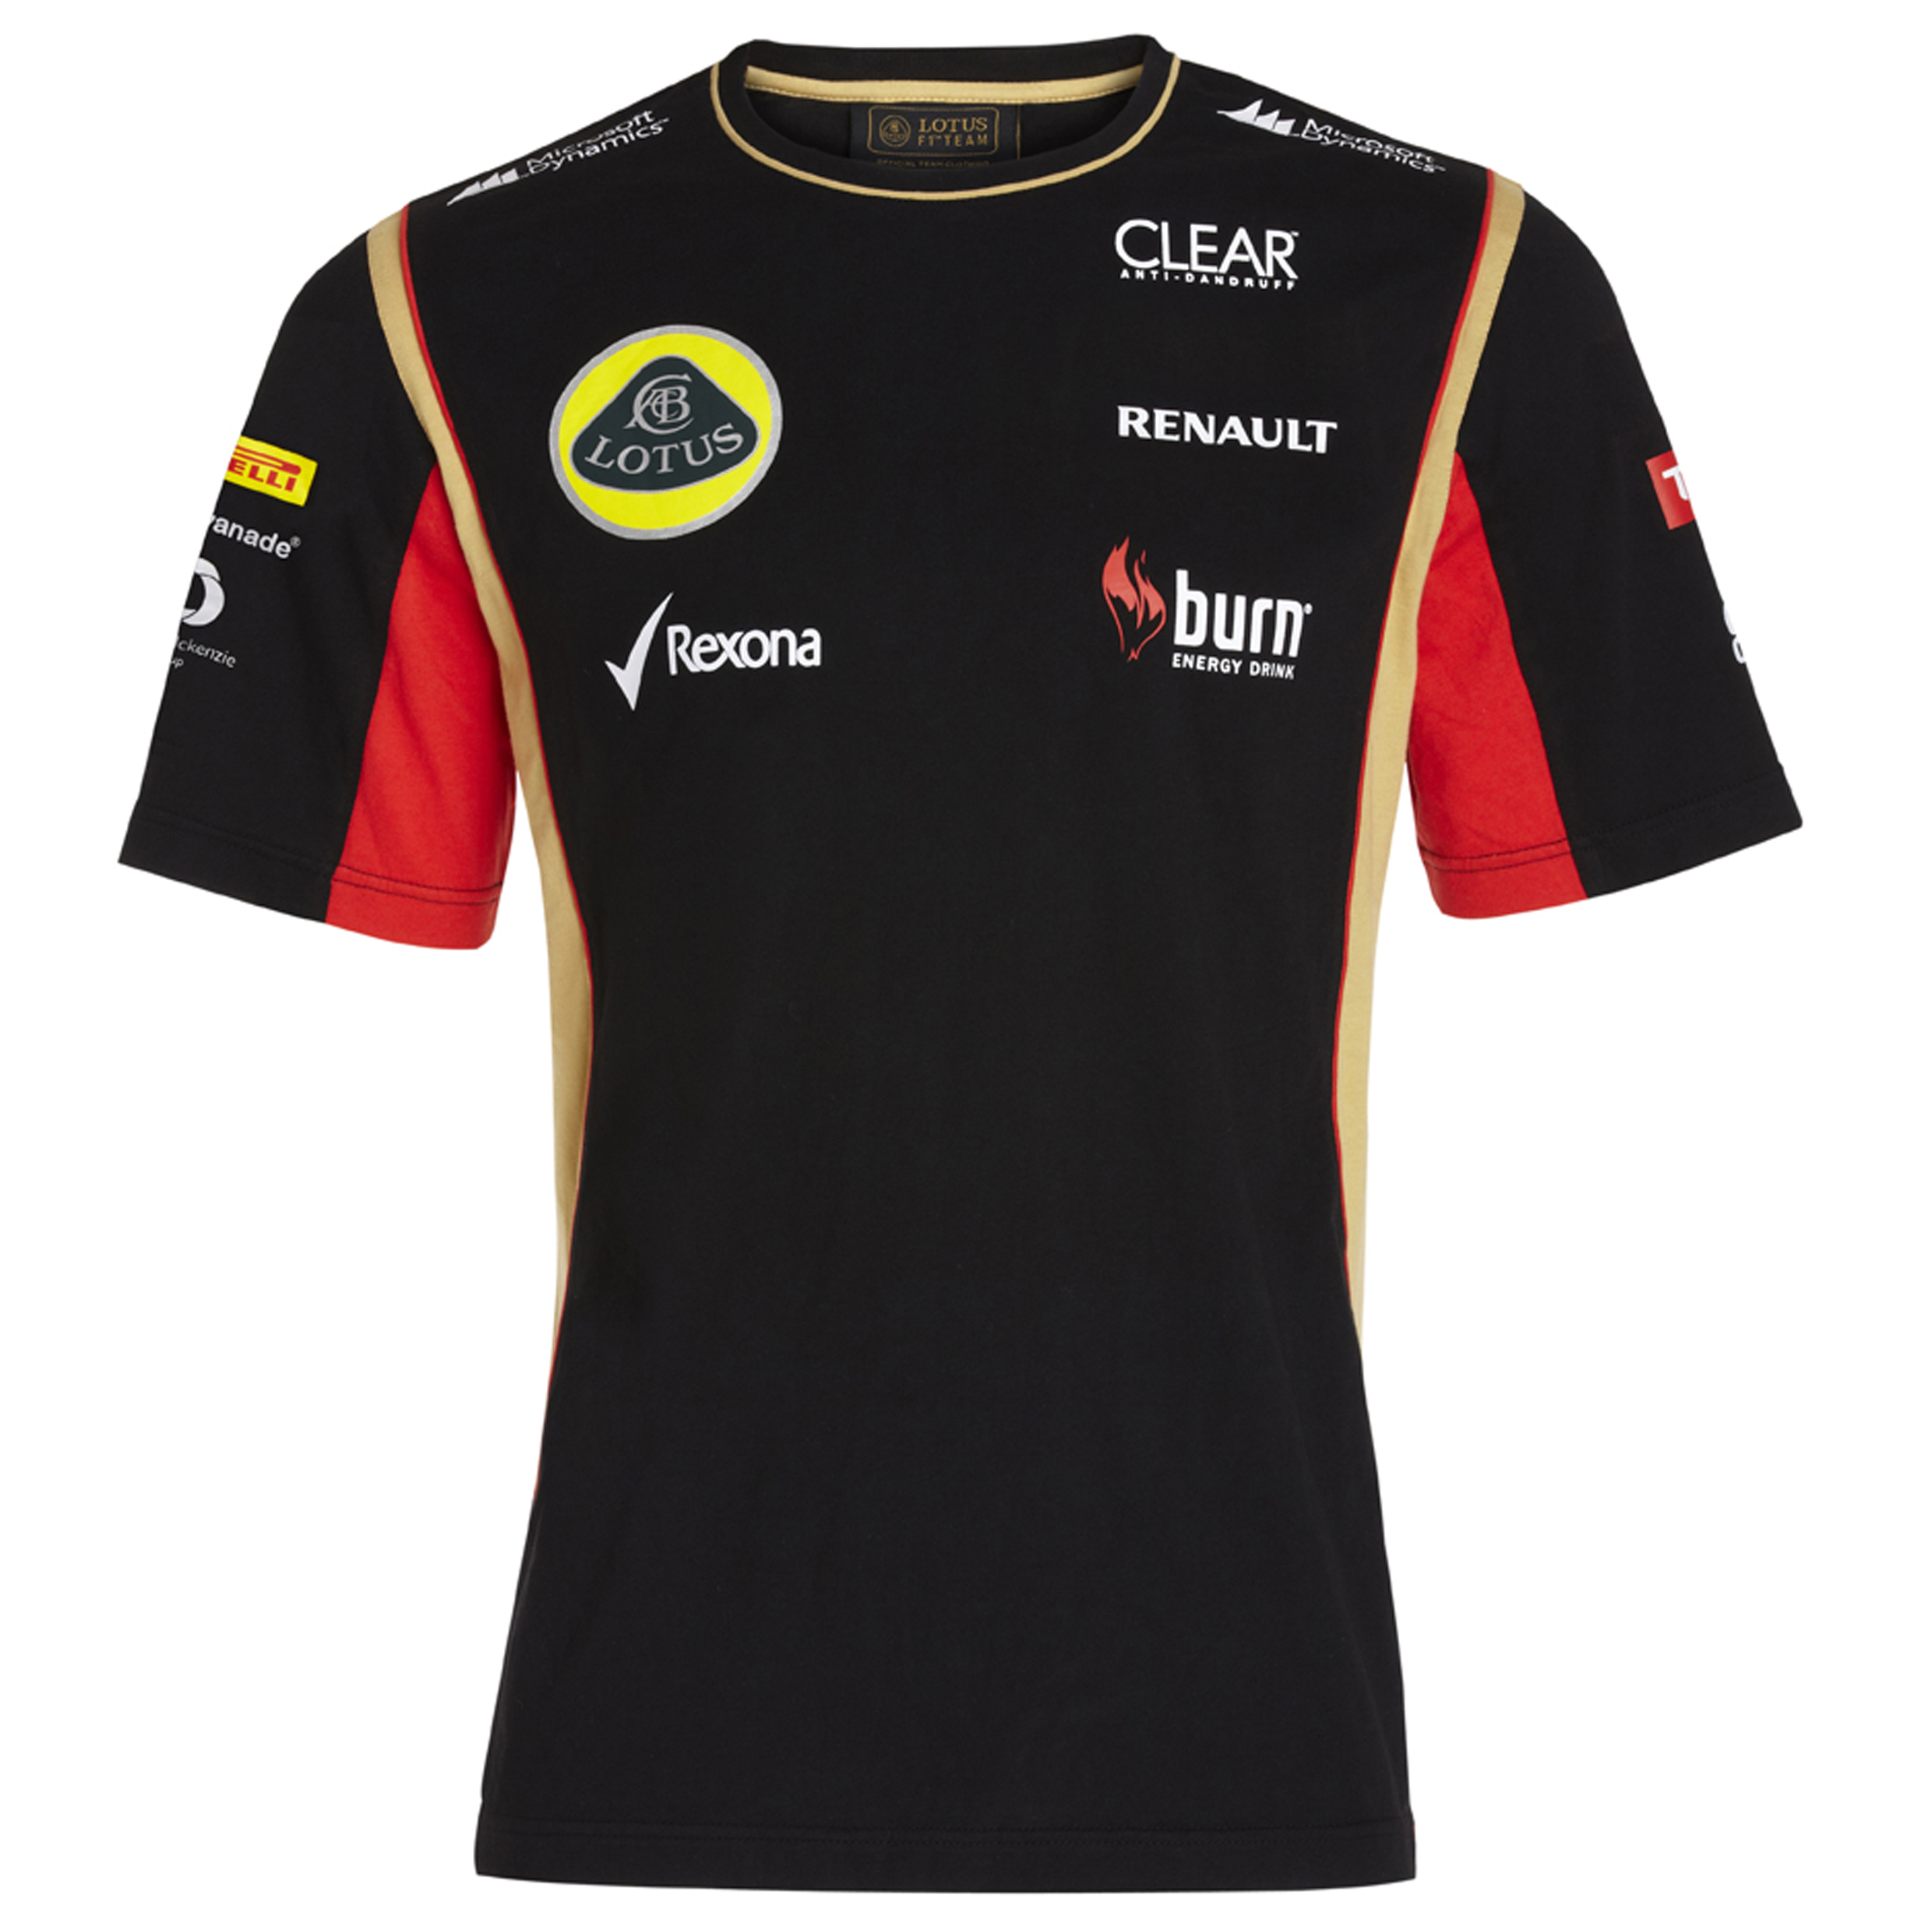 Lotus F1 Team 2013 F1 Mens Replica T-Shirt